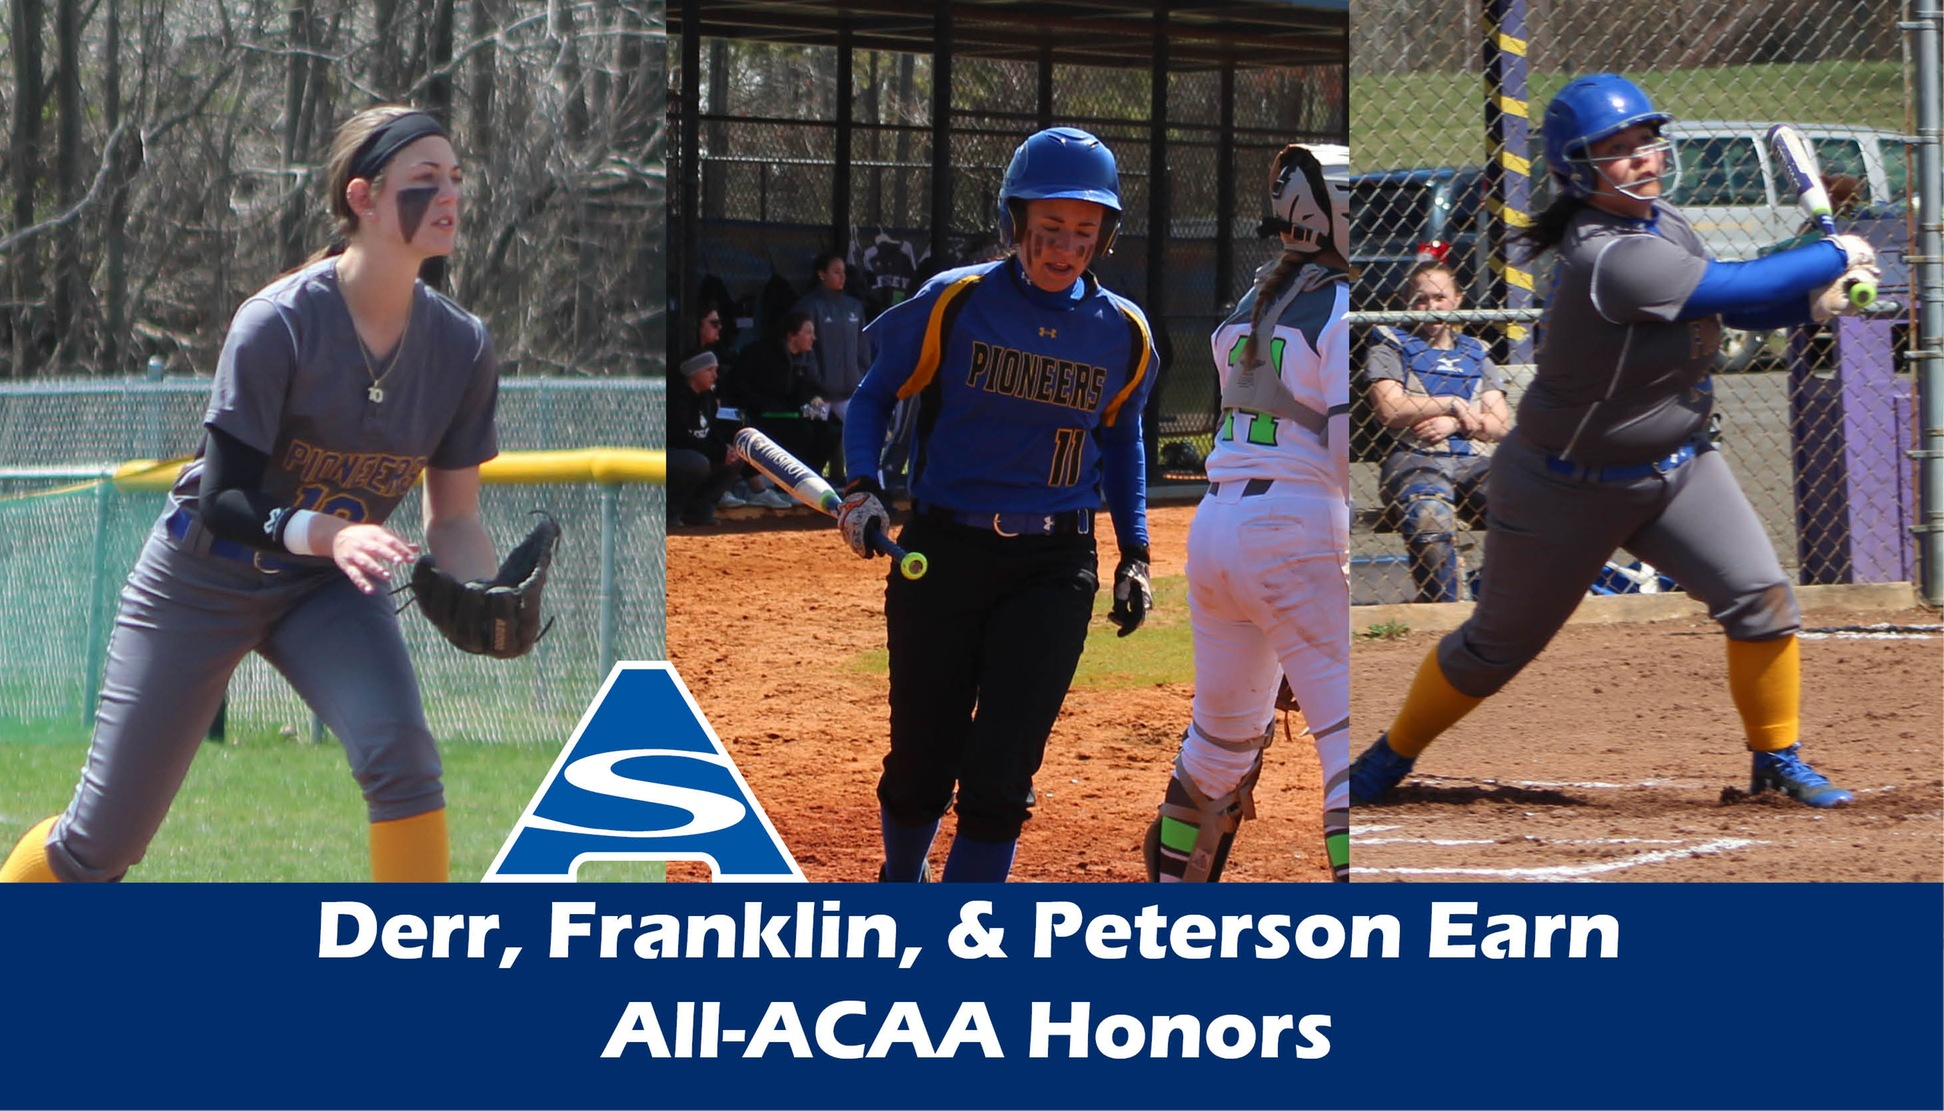 Zoe Derr, Morgan Franklin, and Ashley Peterson have been named All-ACAA